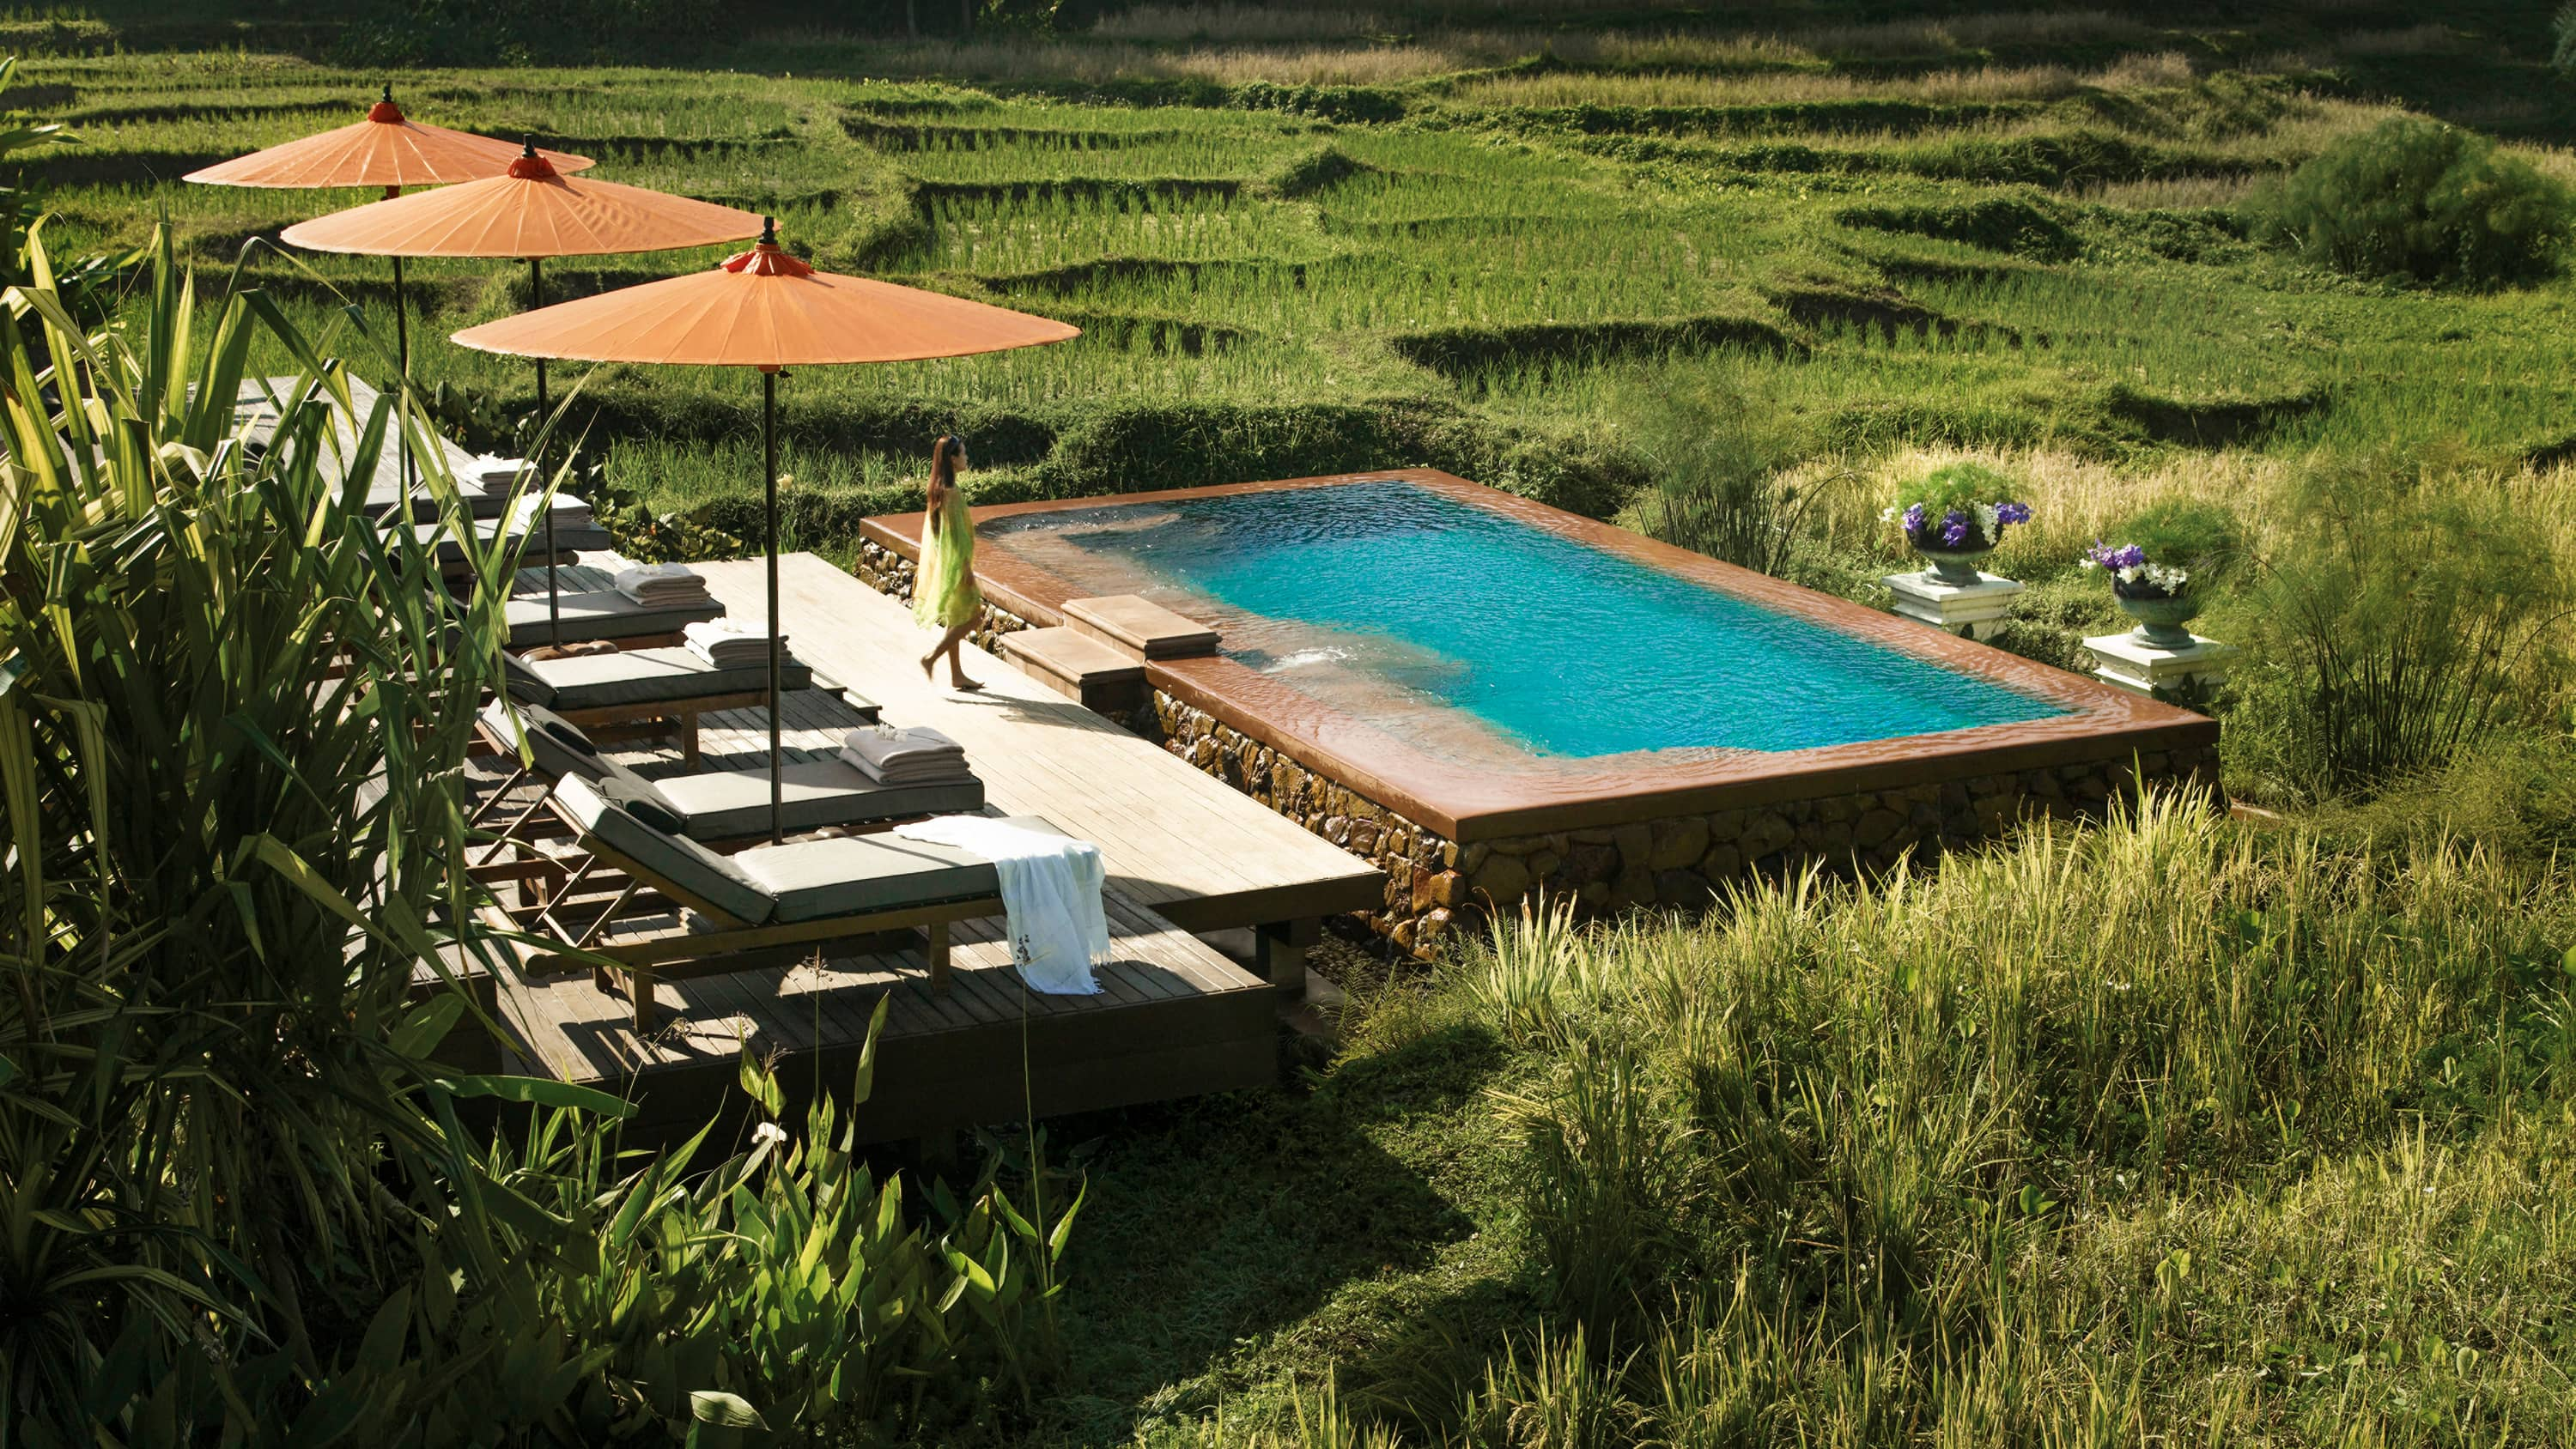 Four Seasons Chiang Mai pool surrounded by rice fields